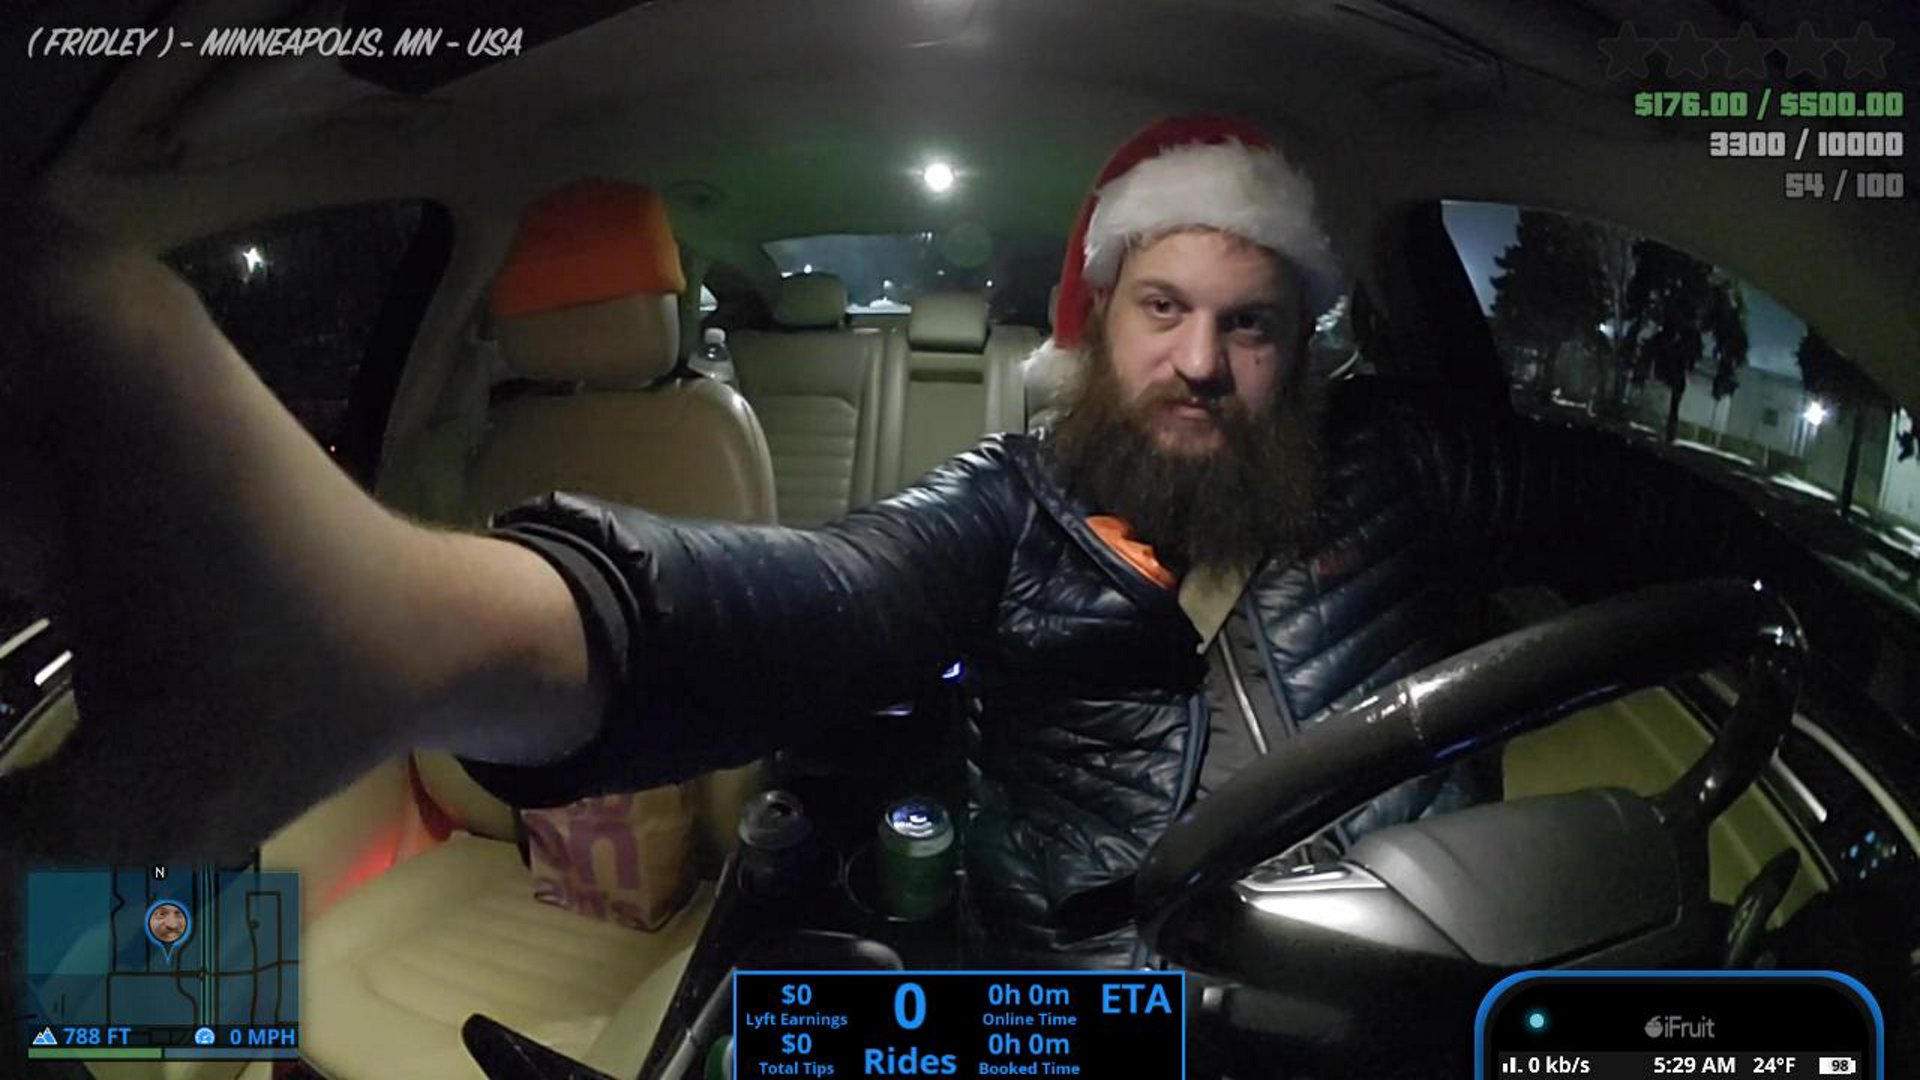 rideshare-roadcam-pov-mn-usa-6k-fishcon-plunges-help-just-chatting-0600-https-t-co-cy61quwmod-https-t-co-gxfzteivpq